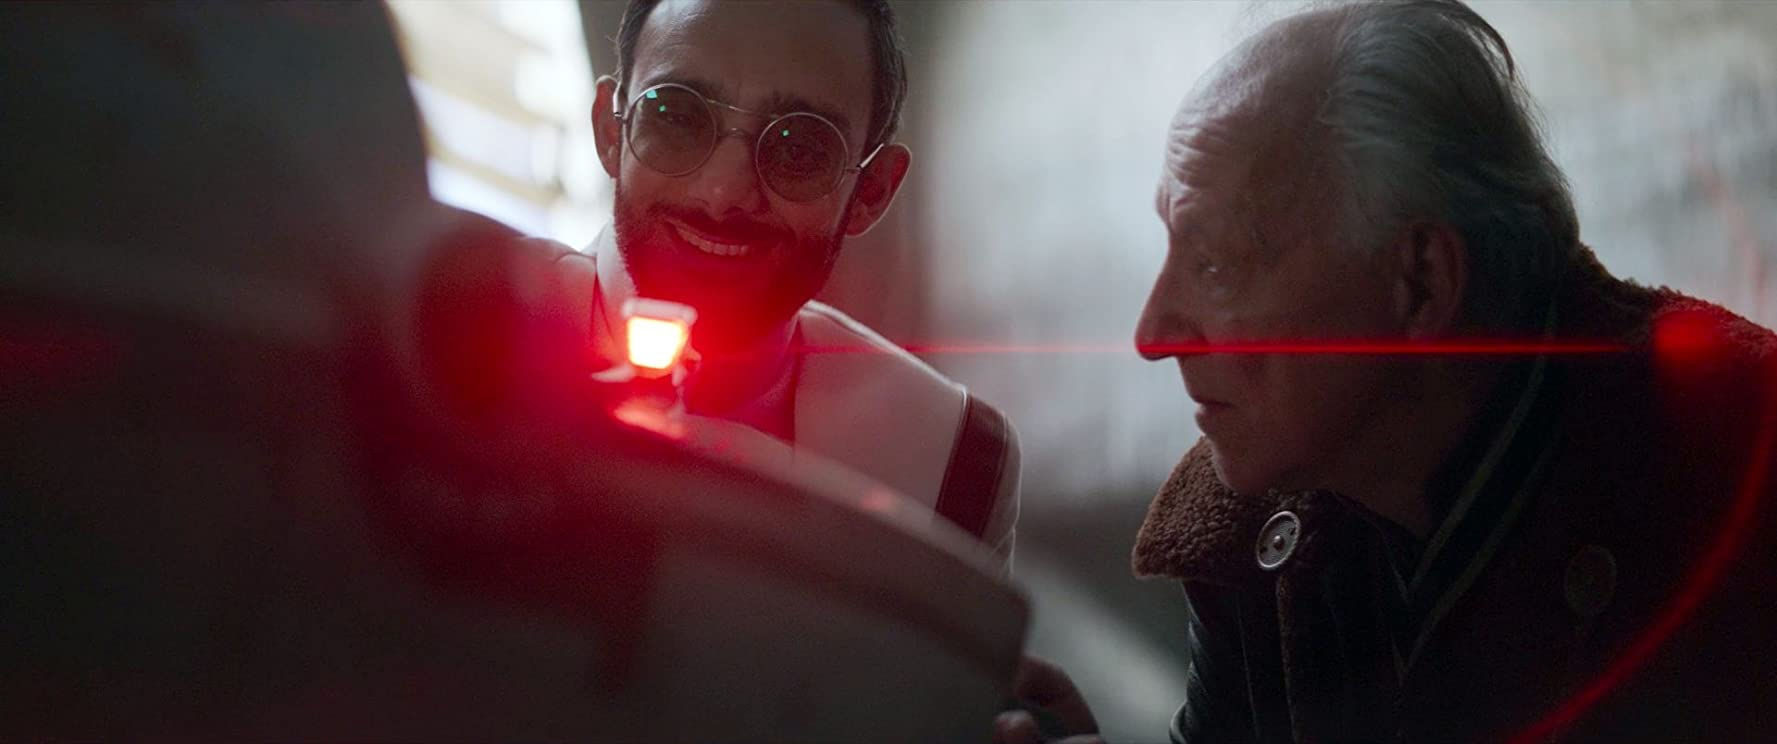 Werner Herzog and Omid Abtahi in The Mandalorian (2019)